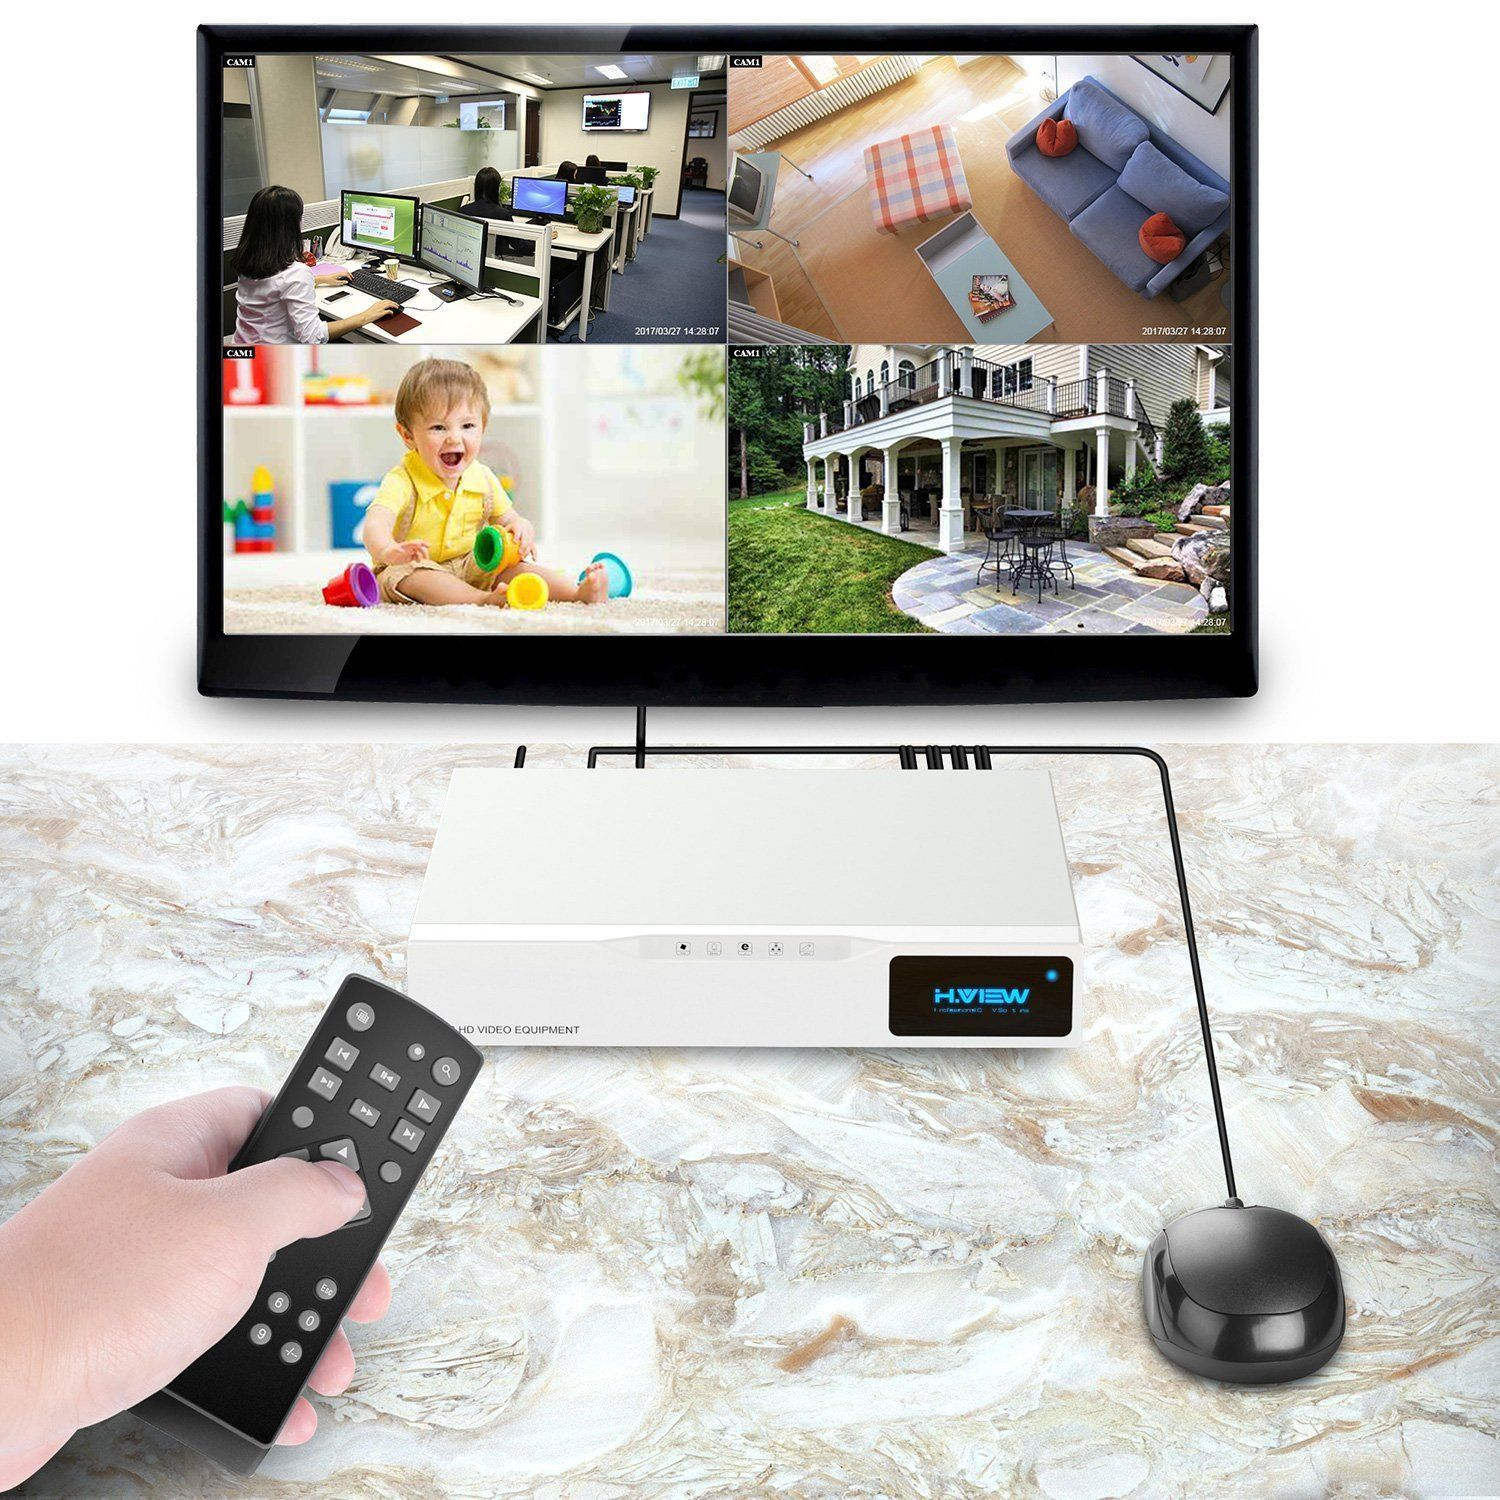 H View 4ch Home Security 1080p Cctv Camera Systems With Hard Drive